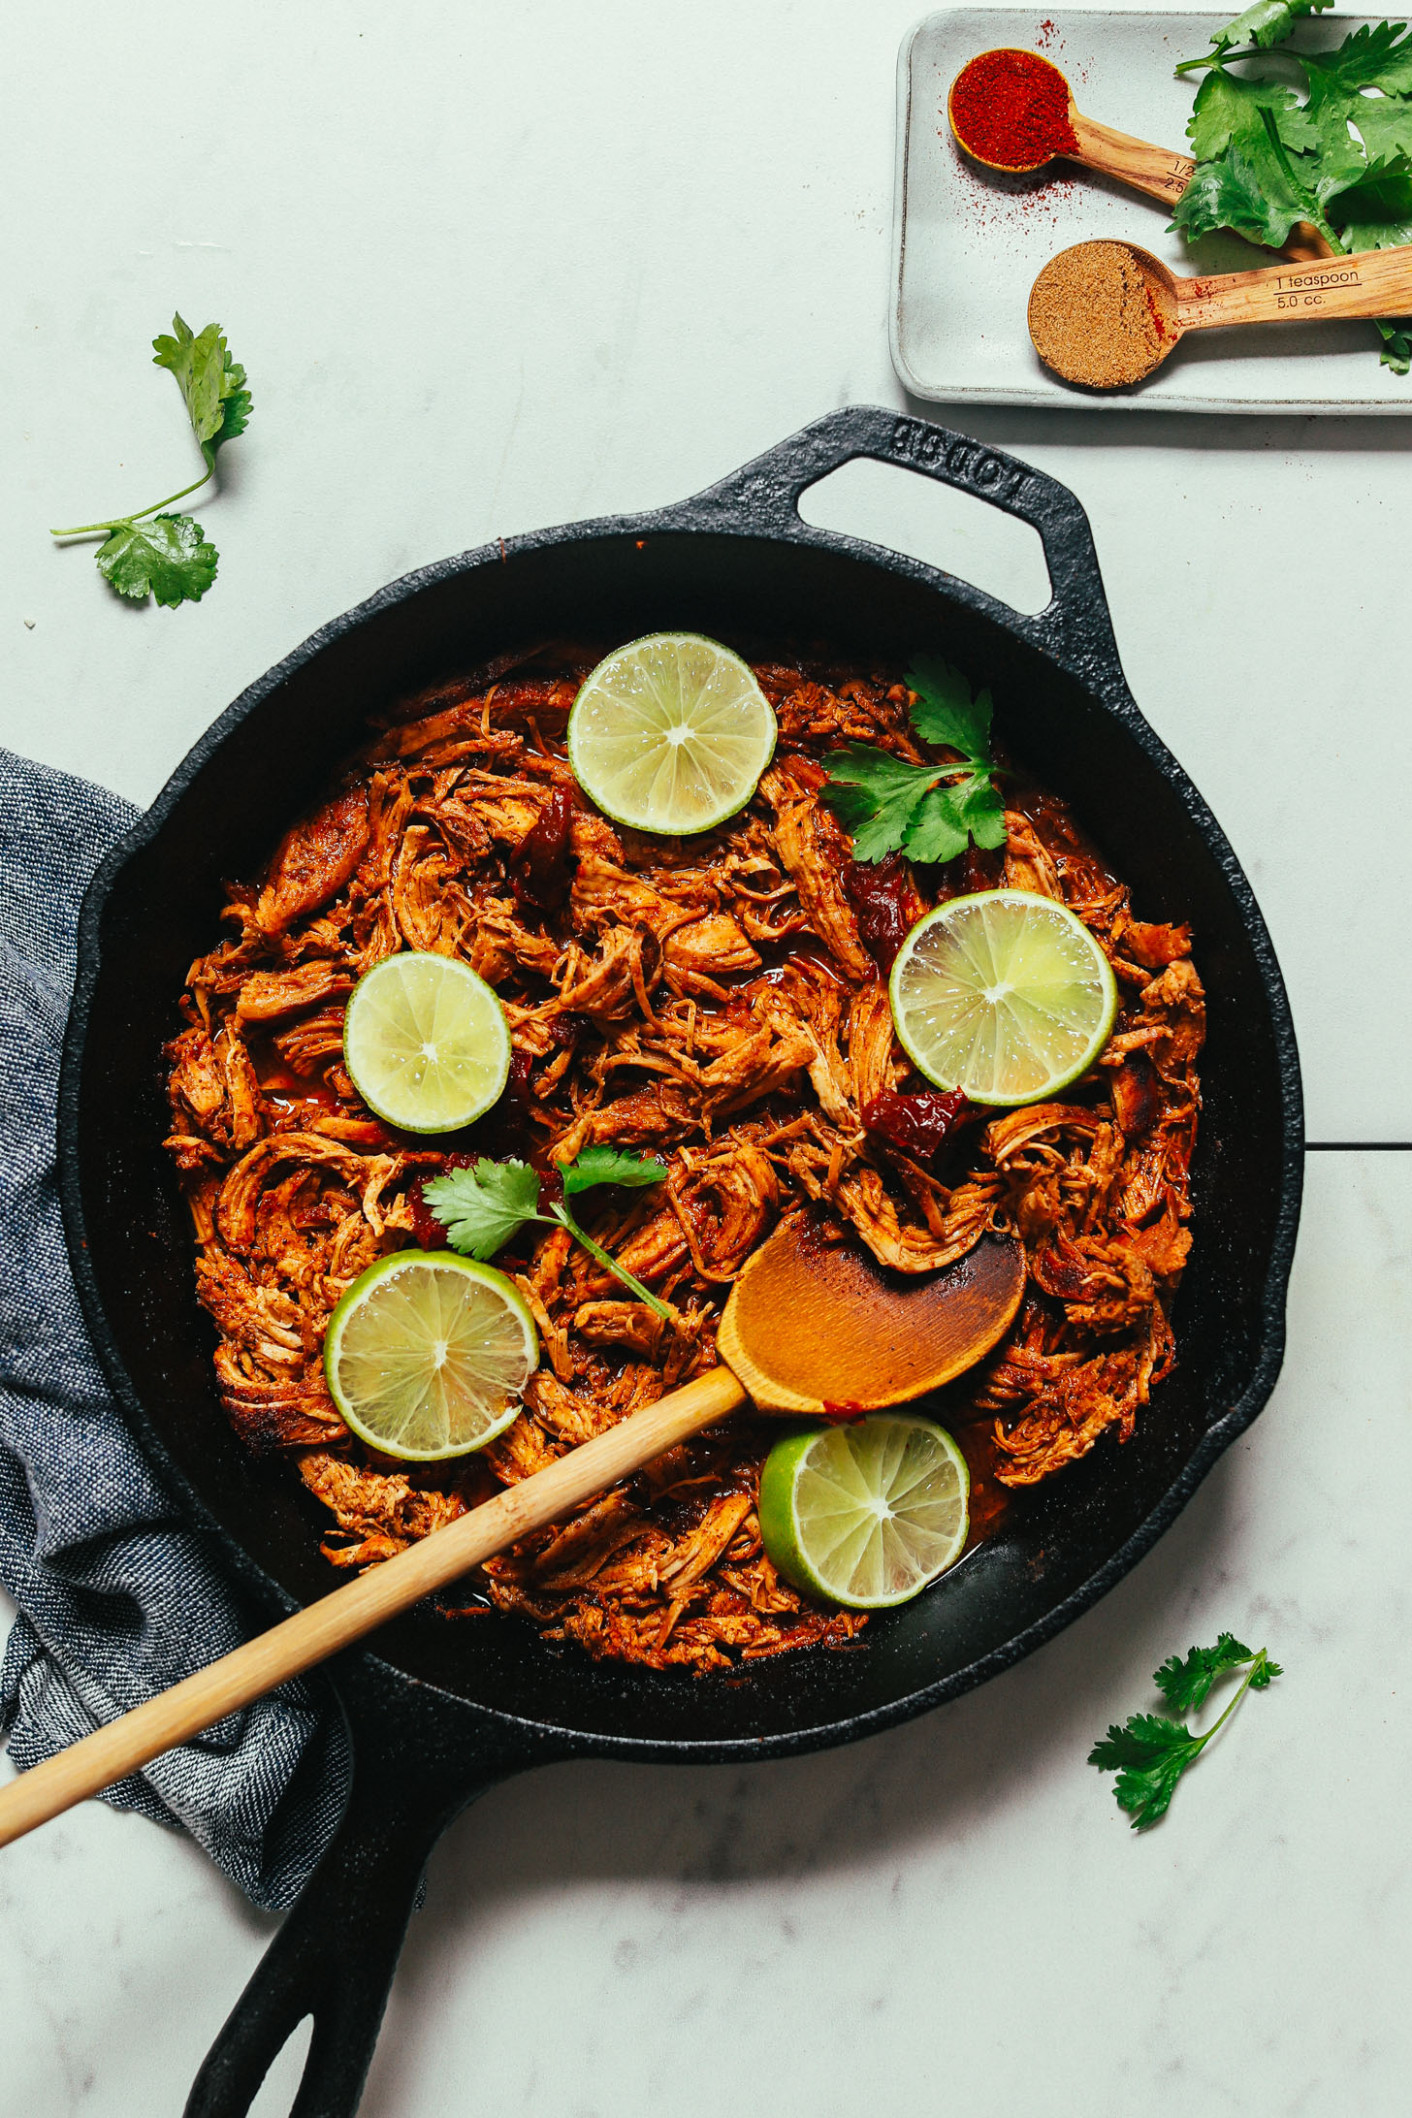 12-Pan Mexican Shredded Chicken | Minimalist Baker Recipes - recipes made with chicken